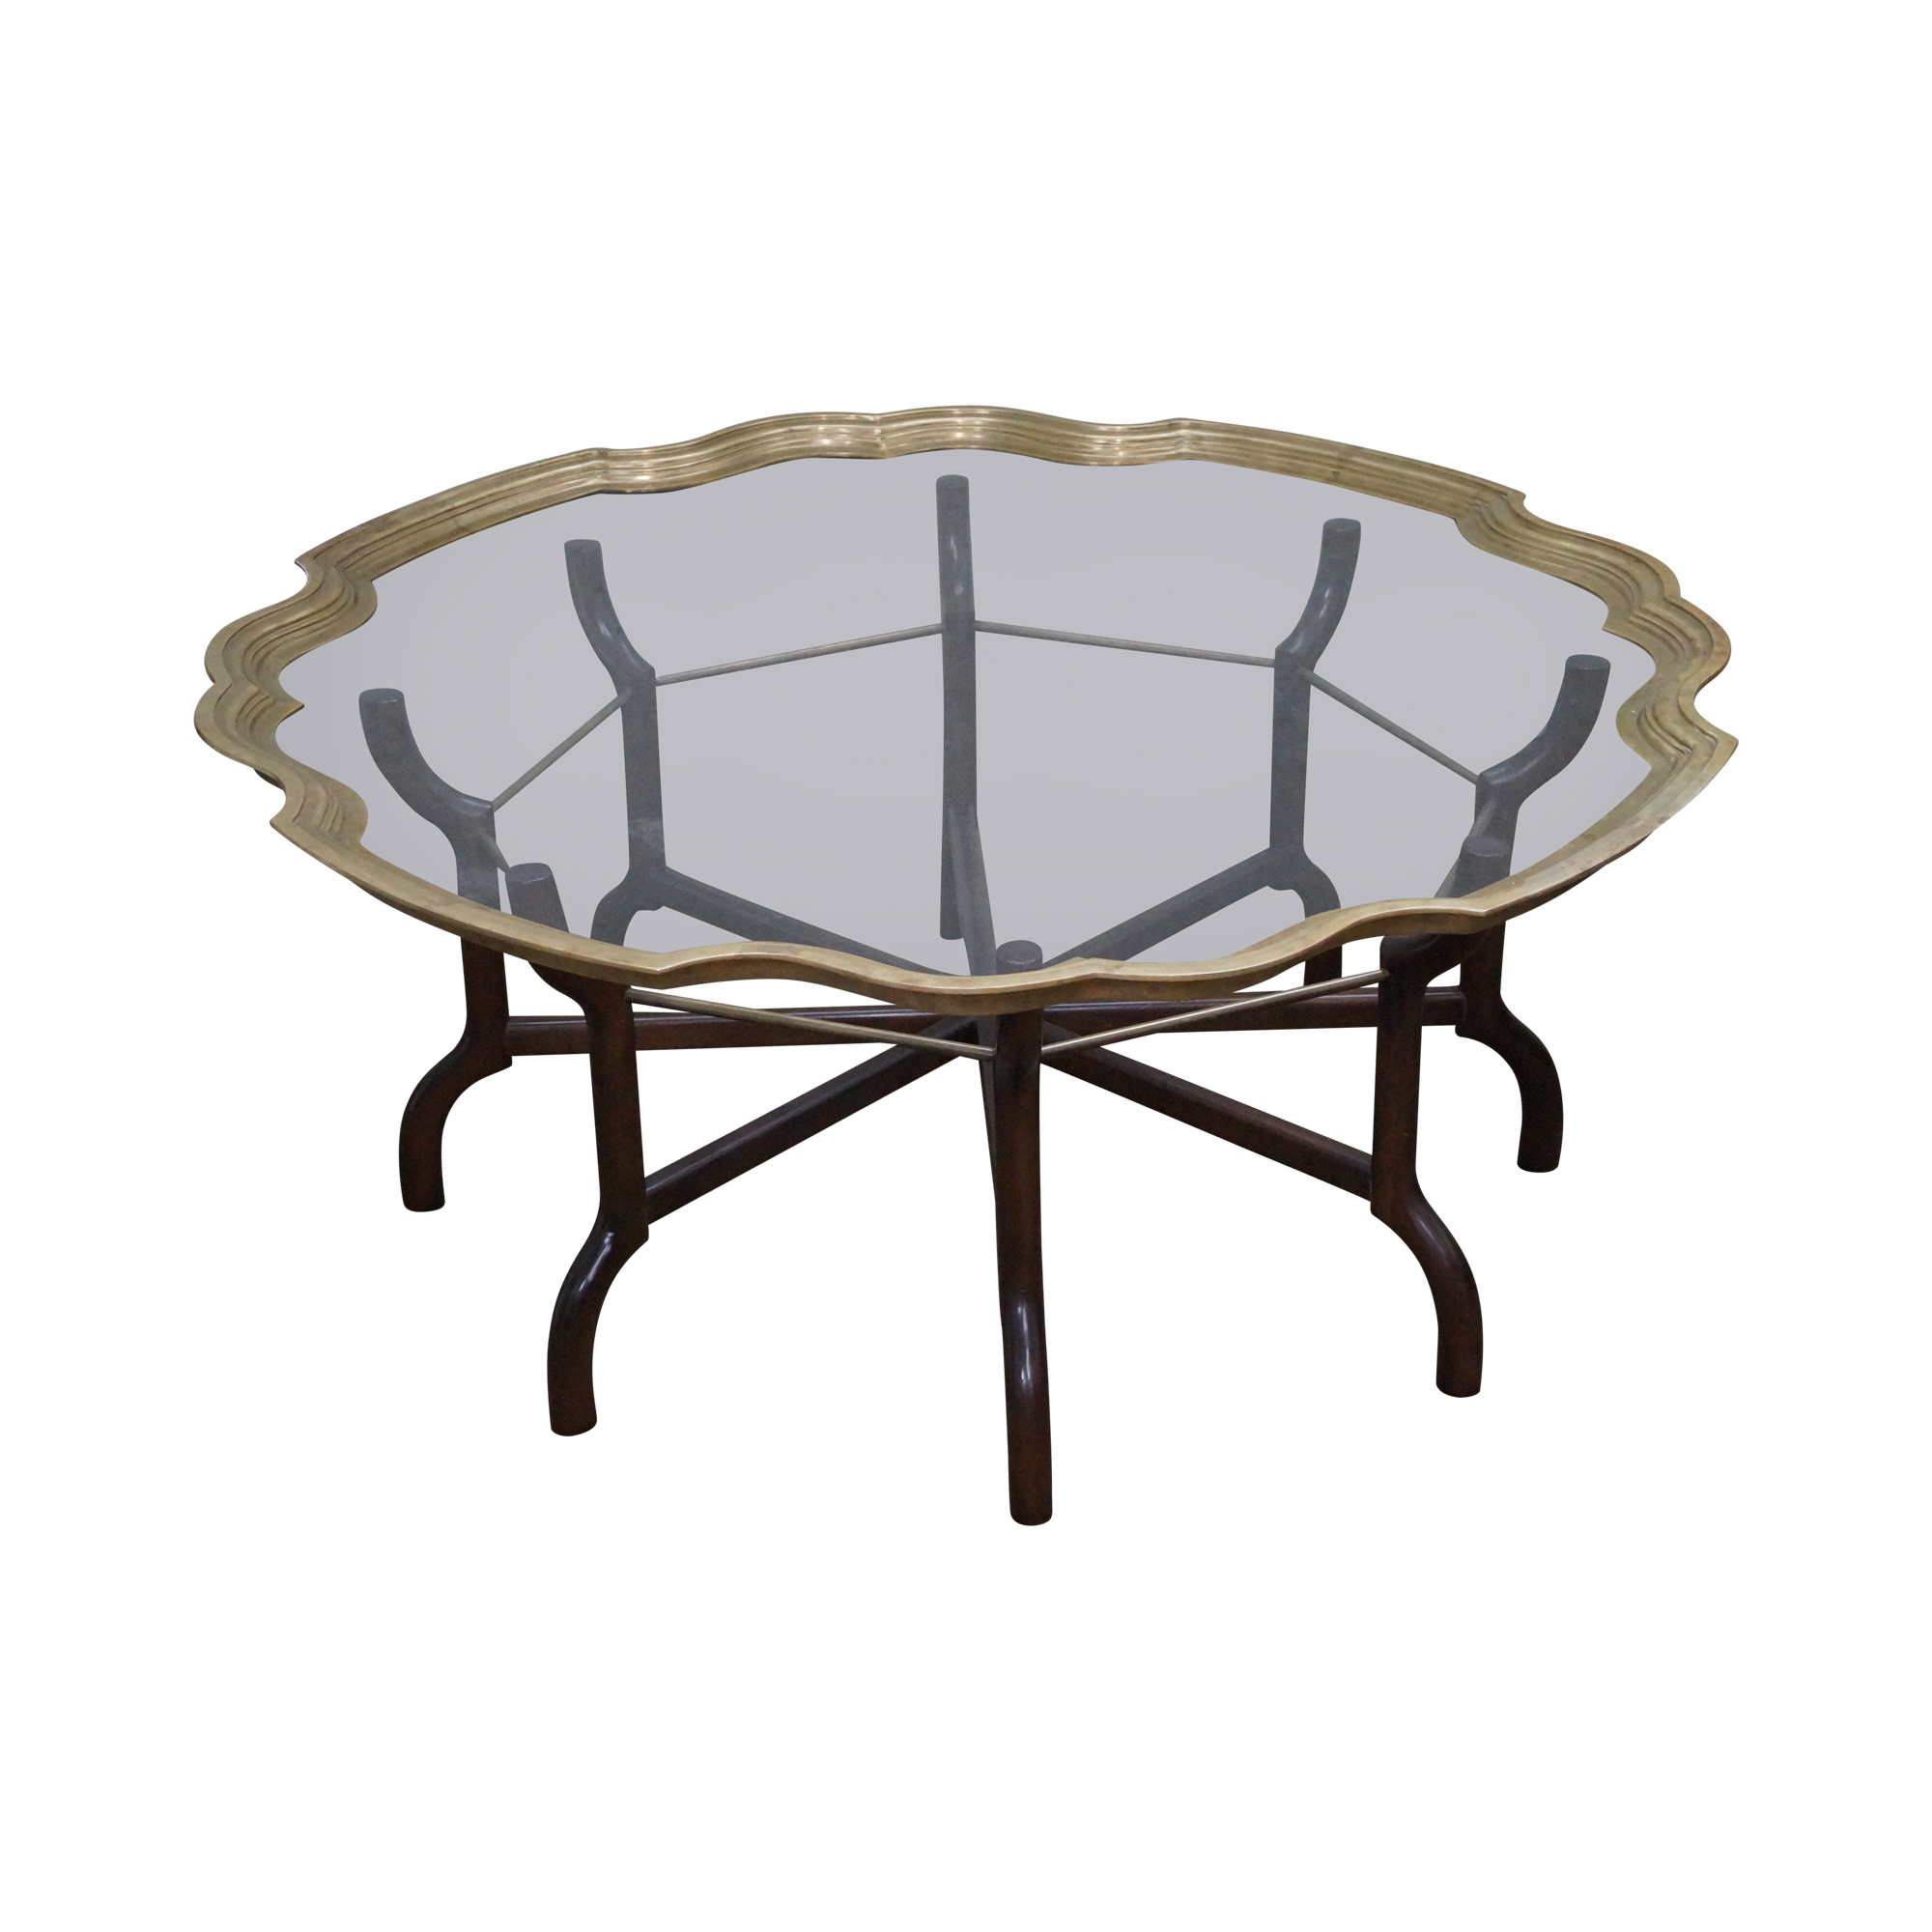 Coffee Table With Tray Top: Brass & Glass Tray Top Coffee Table By Baker